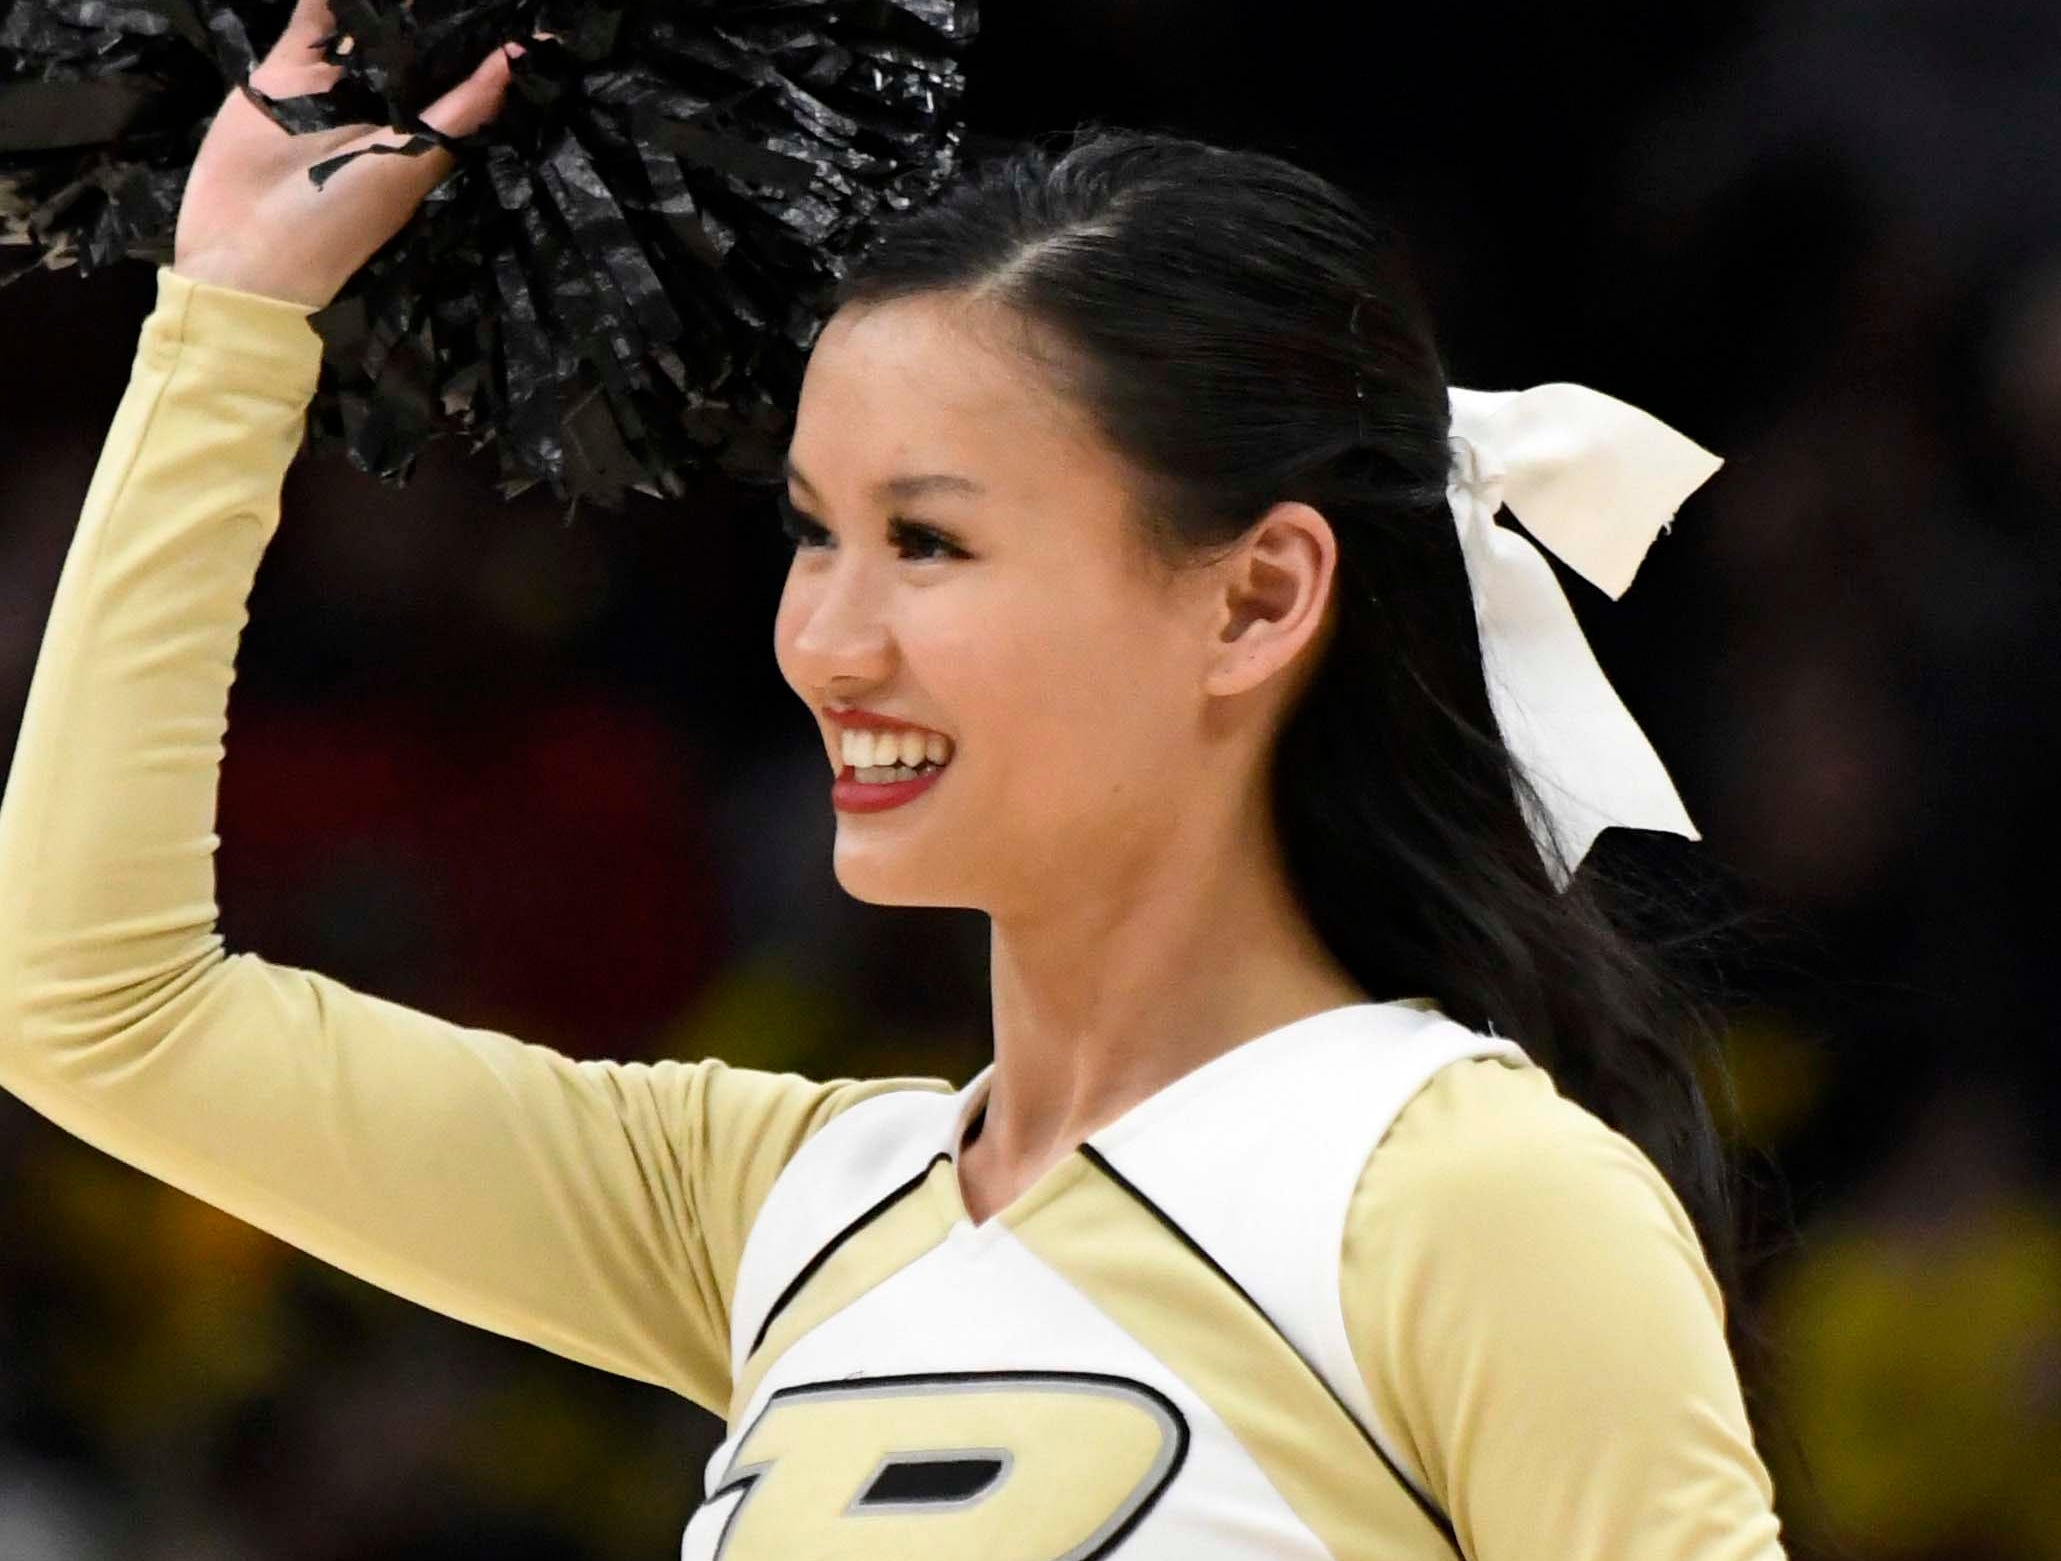 Mar 15, 2019; Chicago, IL, USA; A Purdue Boilermakers cheerleader performs during the second half in the Big Ten conference tournament at United Center. Mandatory Credit: David Banks-USA TODAY Sports